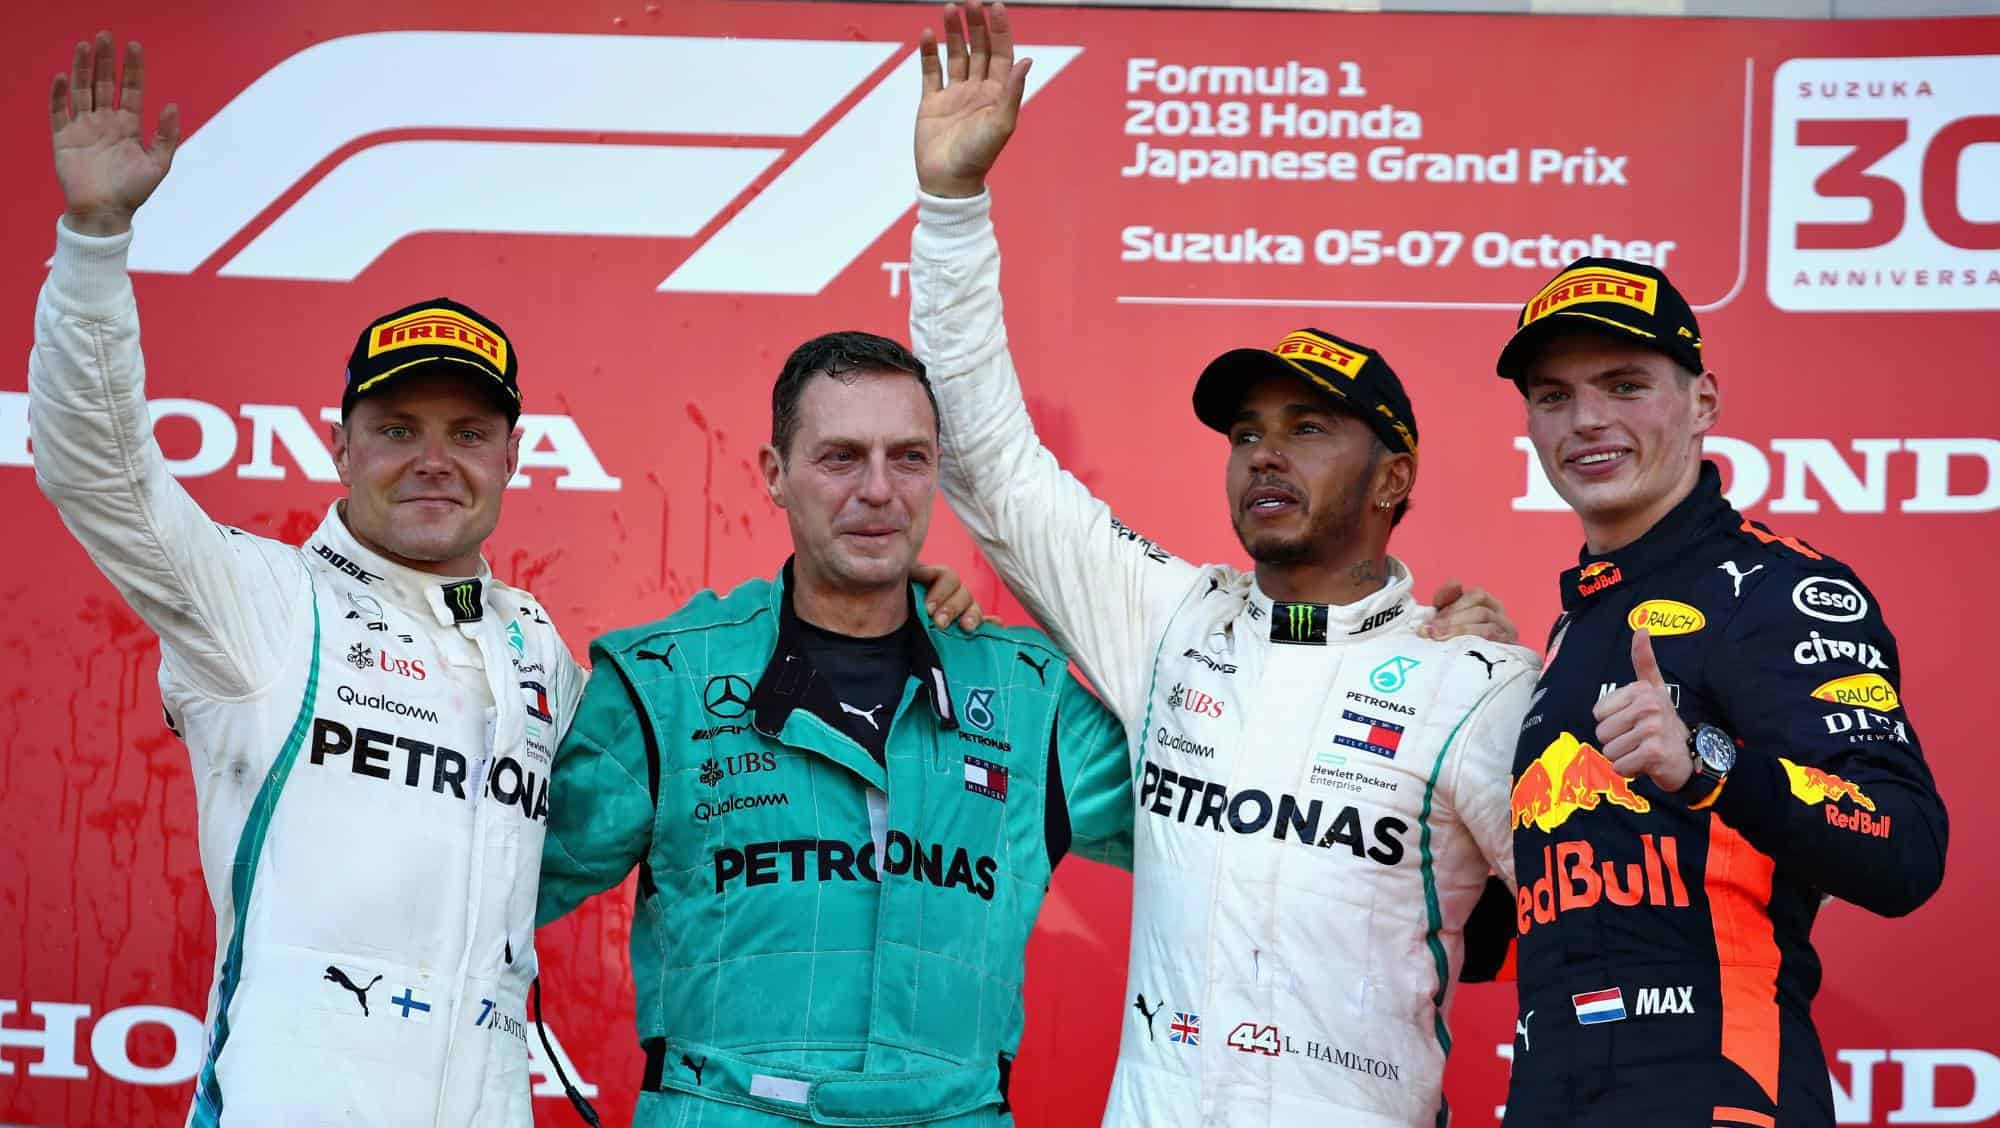 Japanese GP F1 2018 podium Hamilton Bottas Verstappen Photo Red Bull